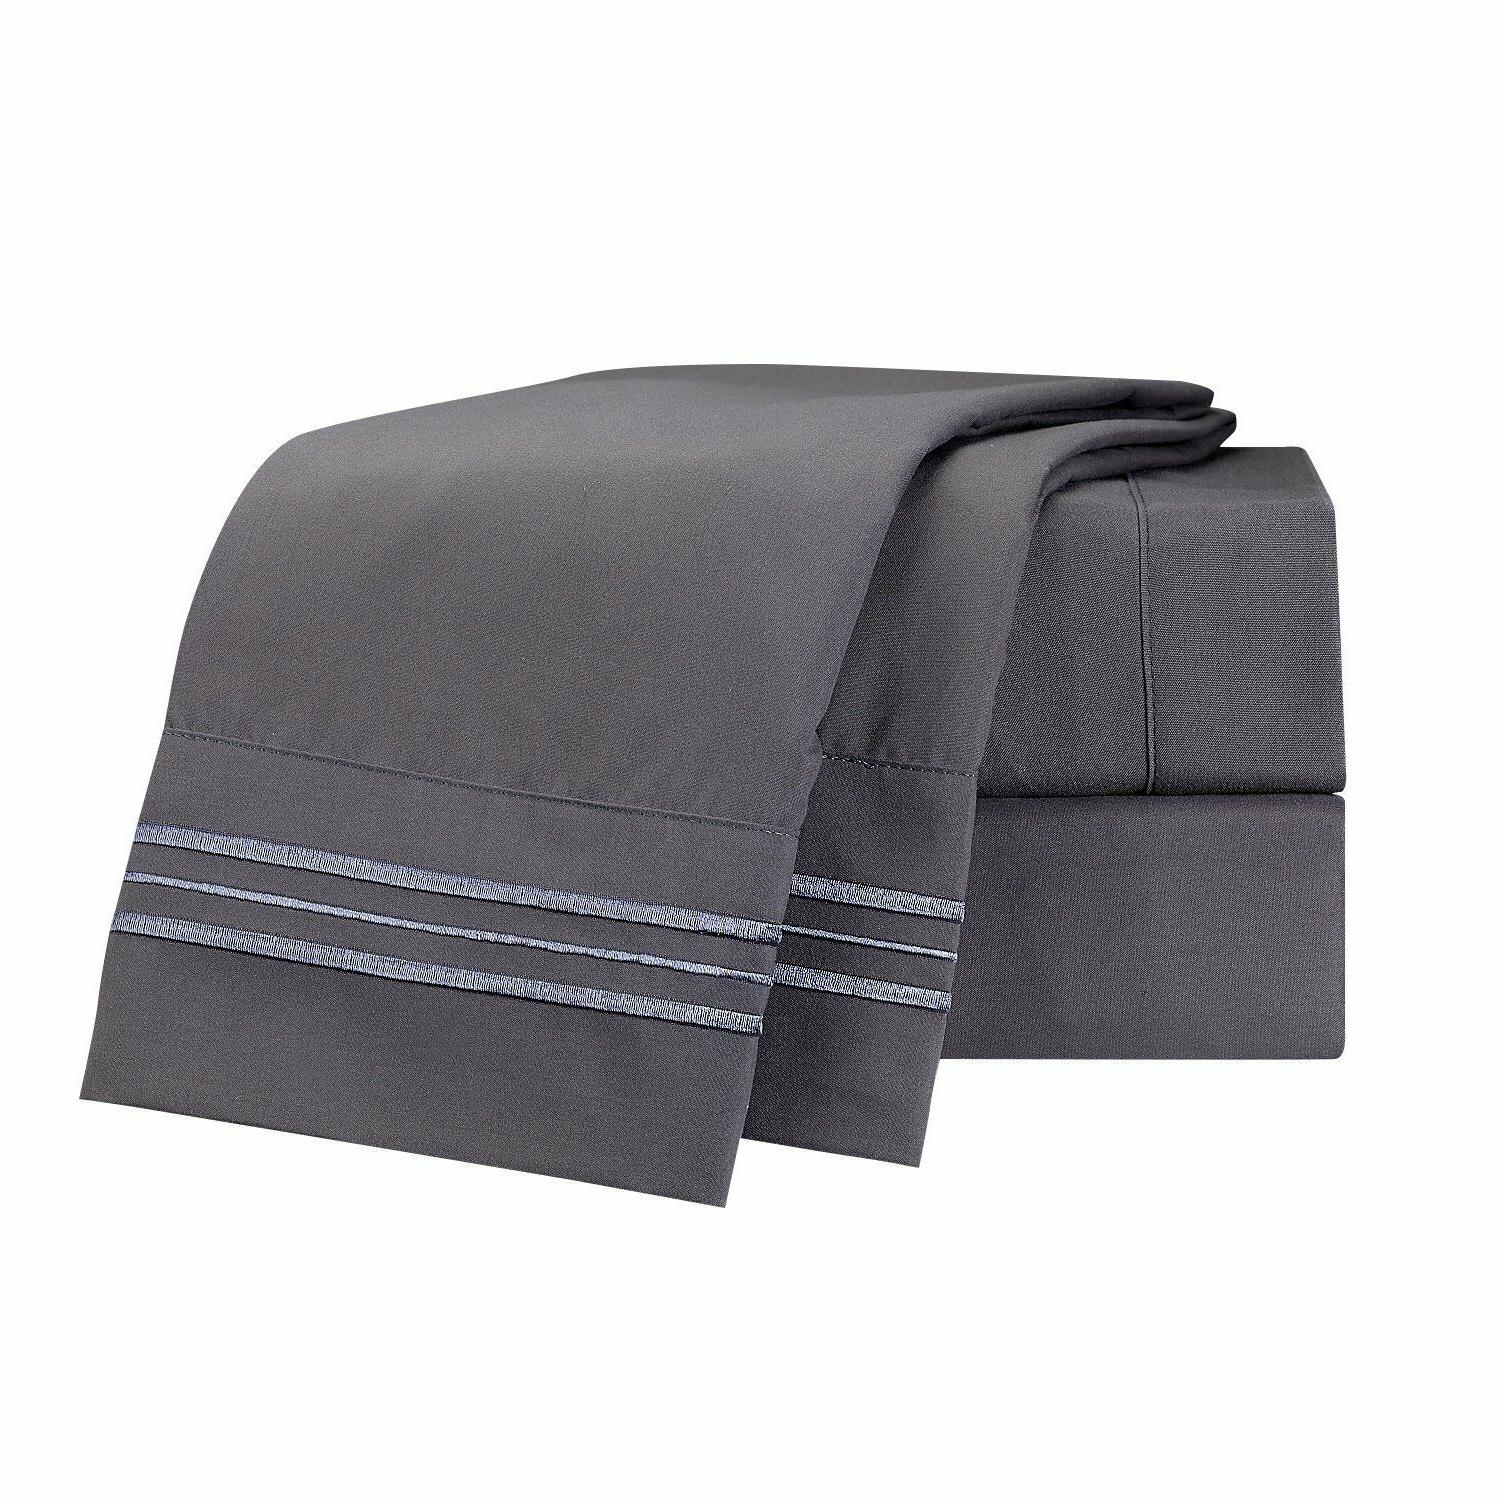 Clara Clark Collection 4pc Set - King Size, Charcoal